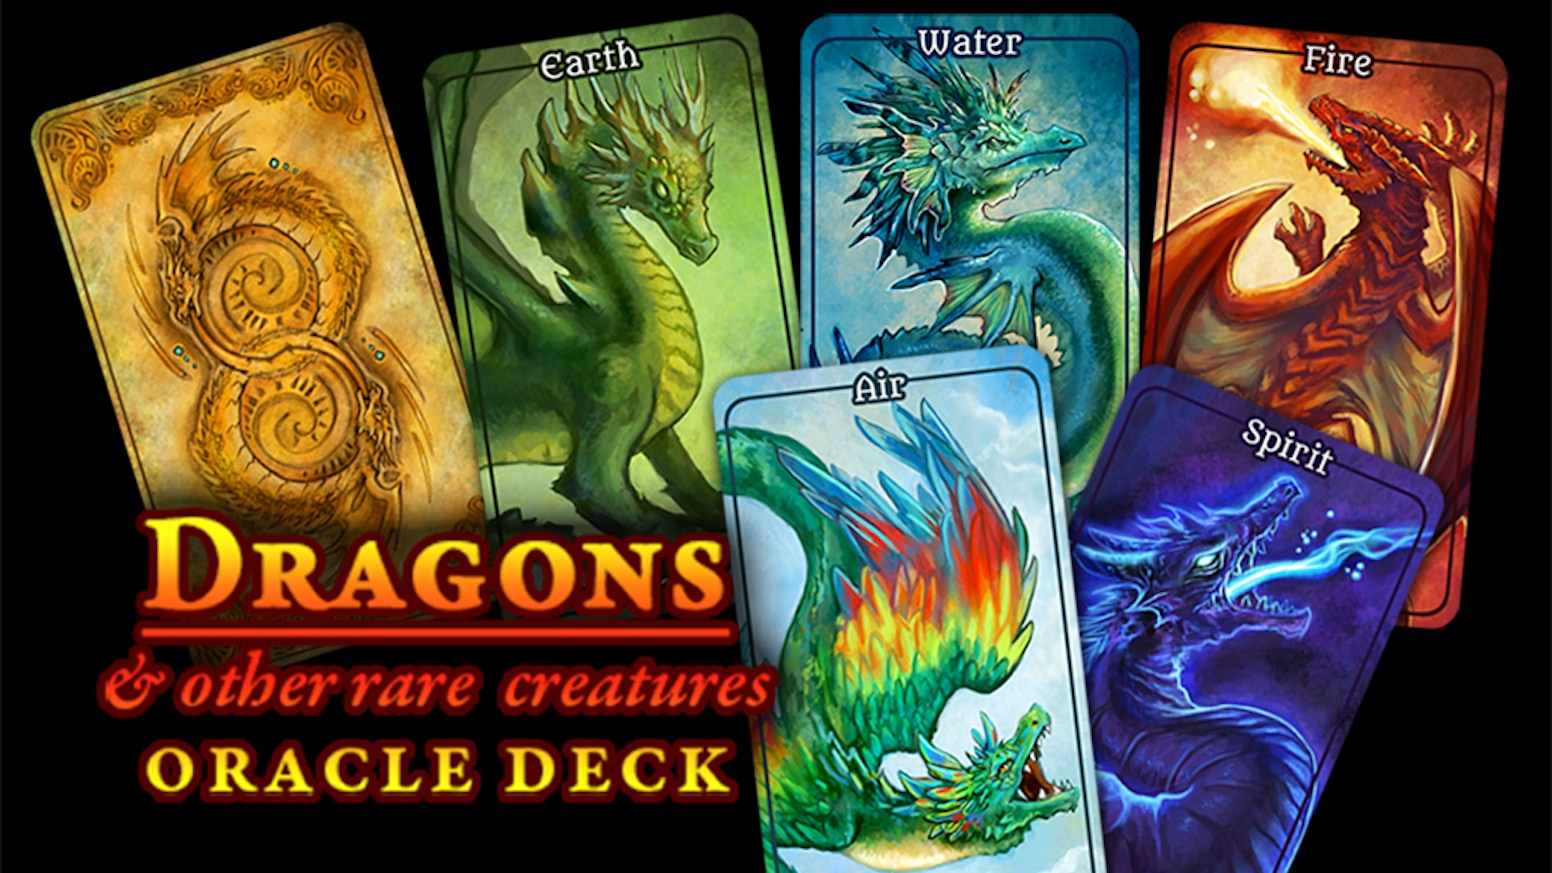 A 60 card, full color oracle deck featuring Dragons, Faeries, and much more!